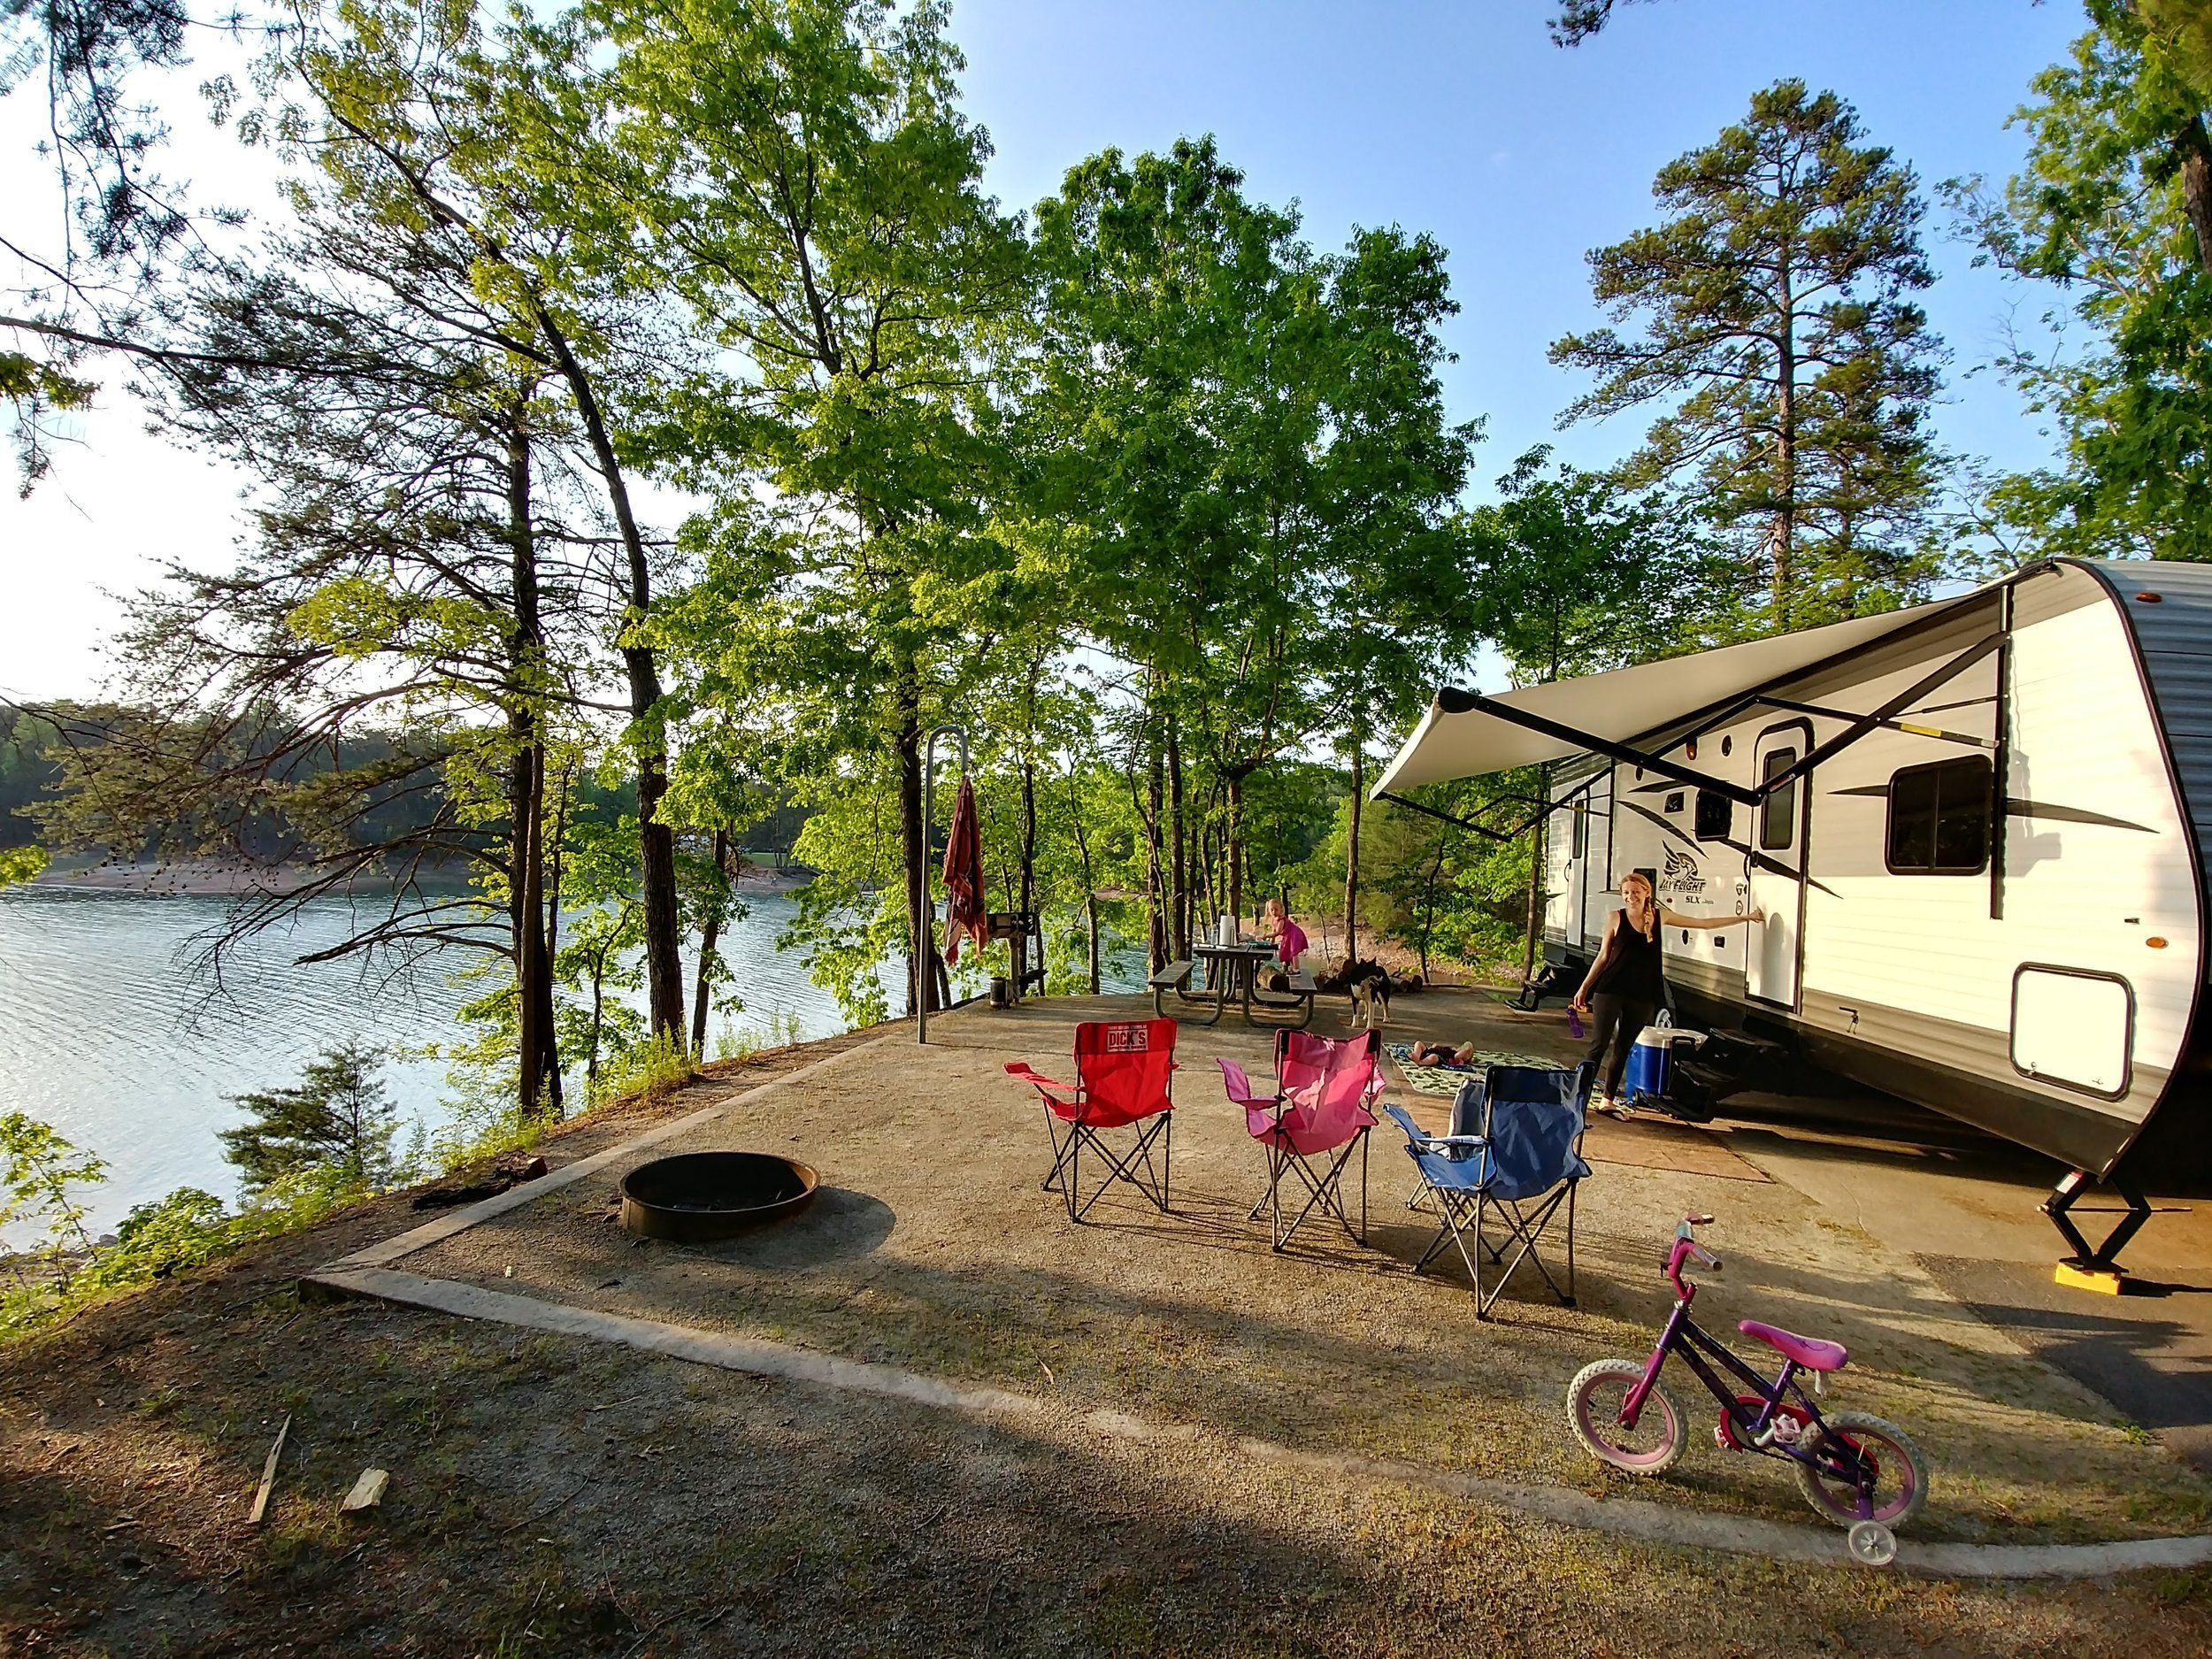 Camping at Ducket Mill Campground on Lake Lanier ...